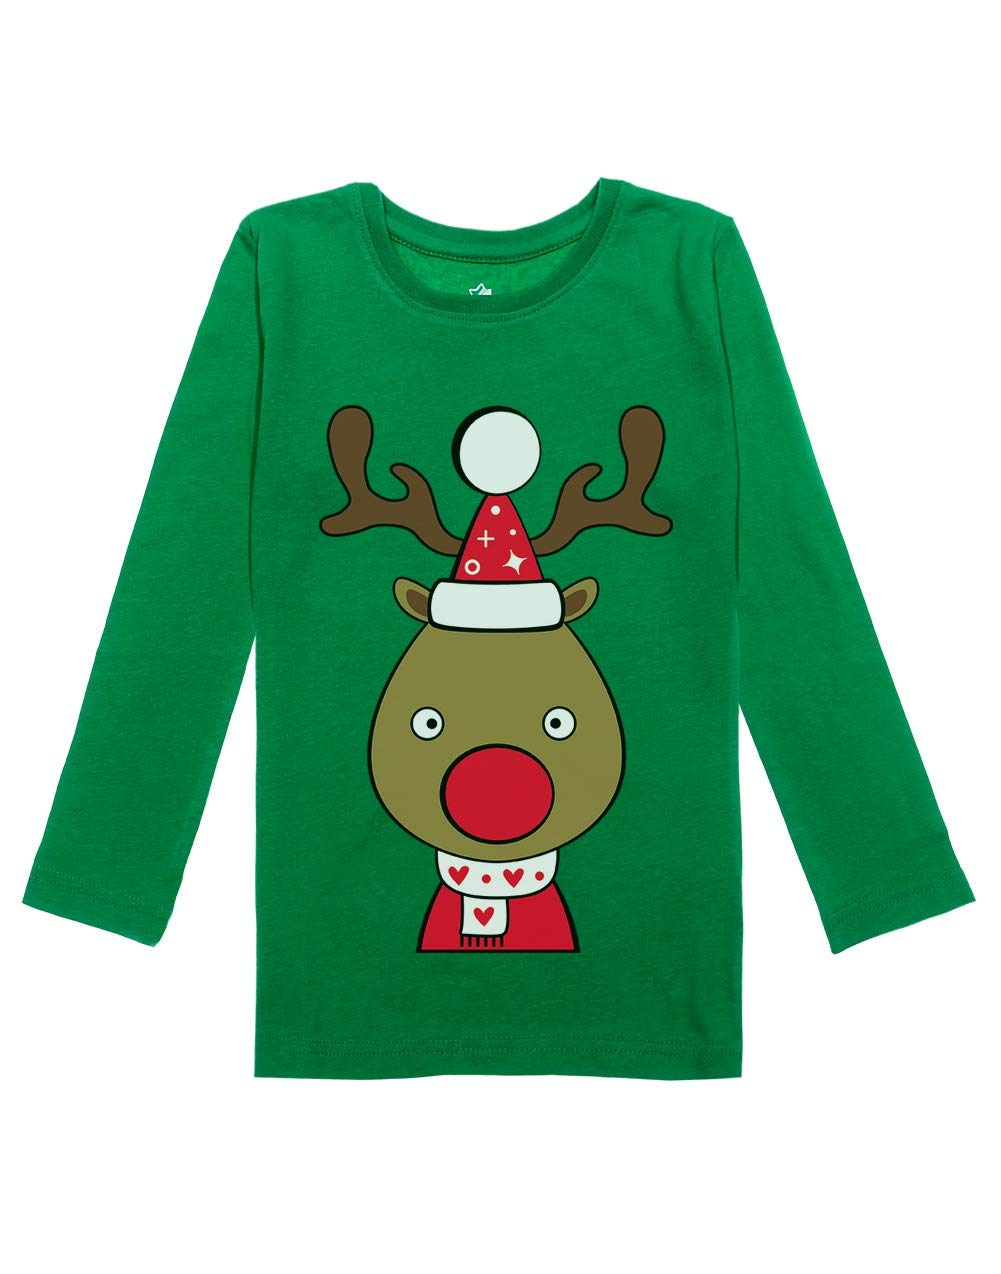 Cute Reindeer Outfit for Christmas Toddler Girls Fitted Long Sleeve T-Shirt